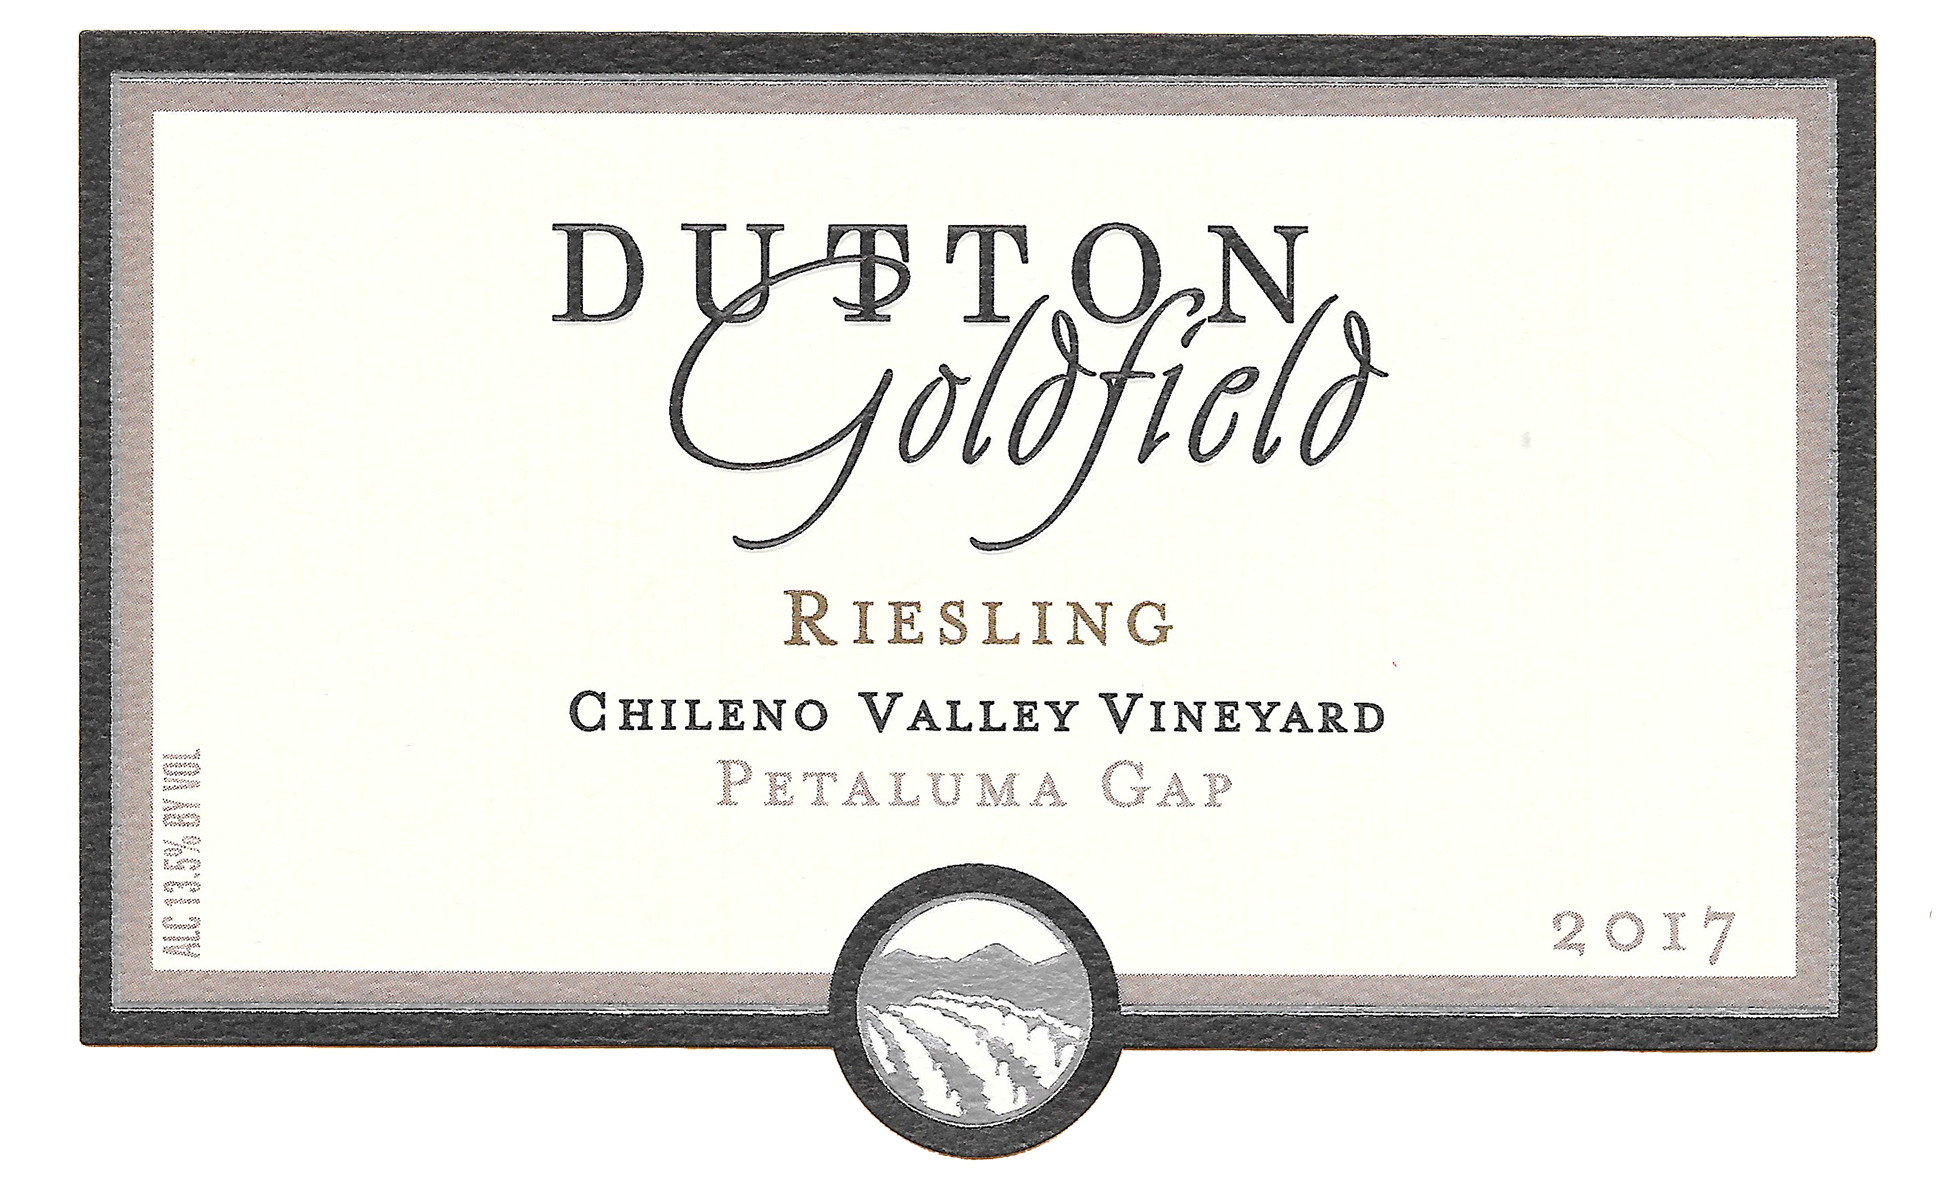 Dutton Goldfield Riesling photo